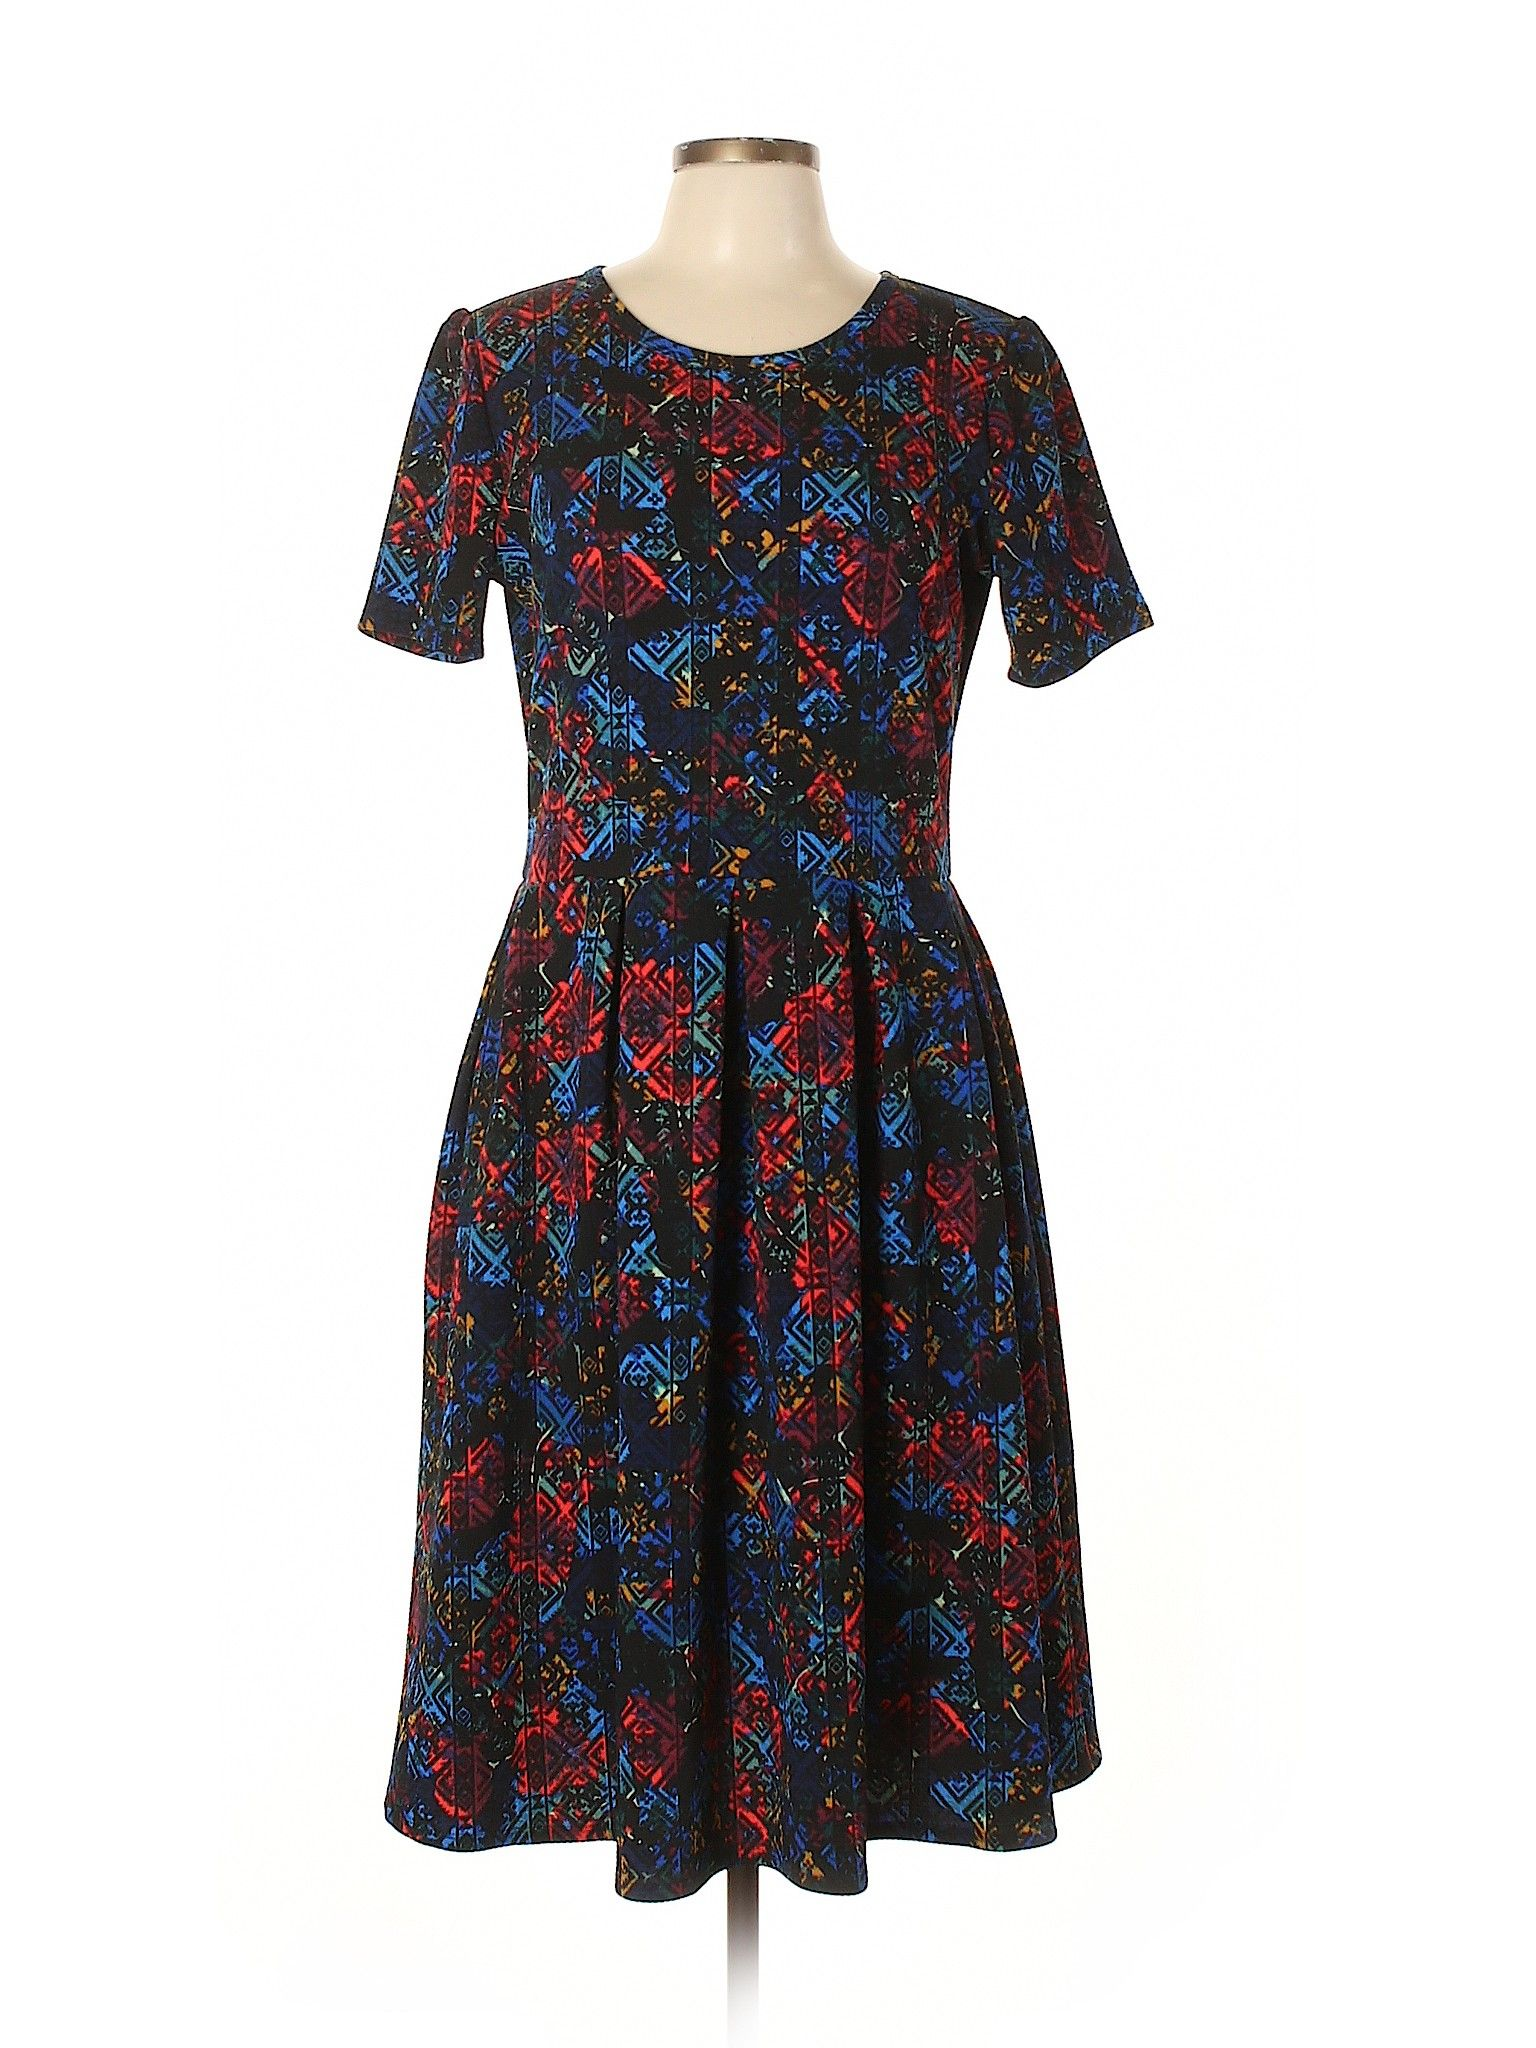 Lularoe Casual Dress Fit Flare Black Floral Dresses Used Size X Large Clothes Floral Dress Black Casual Dress